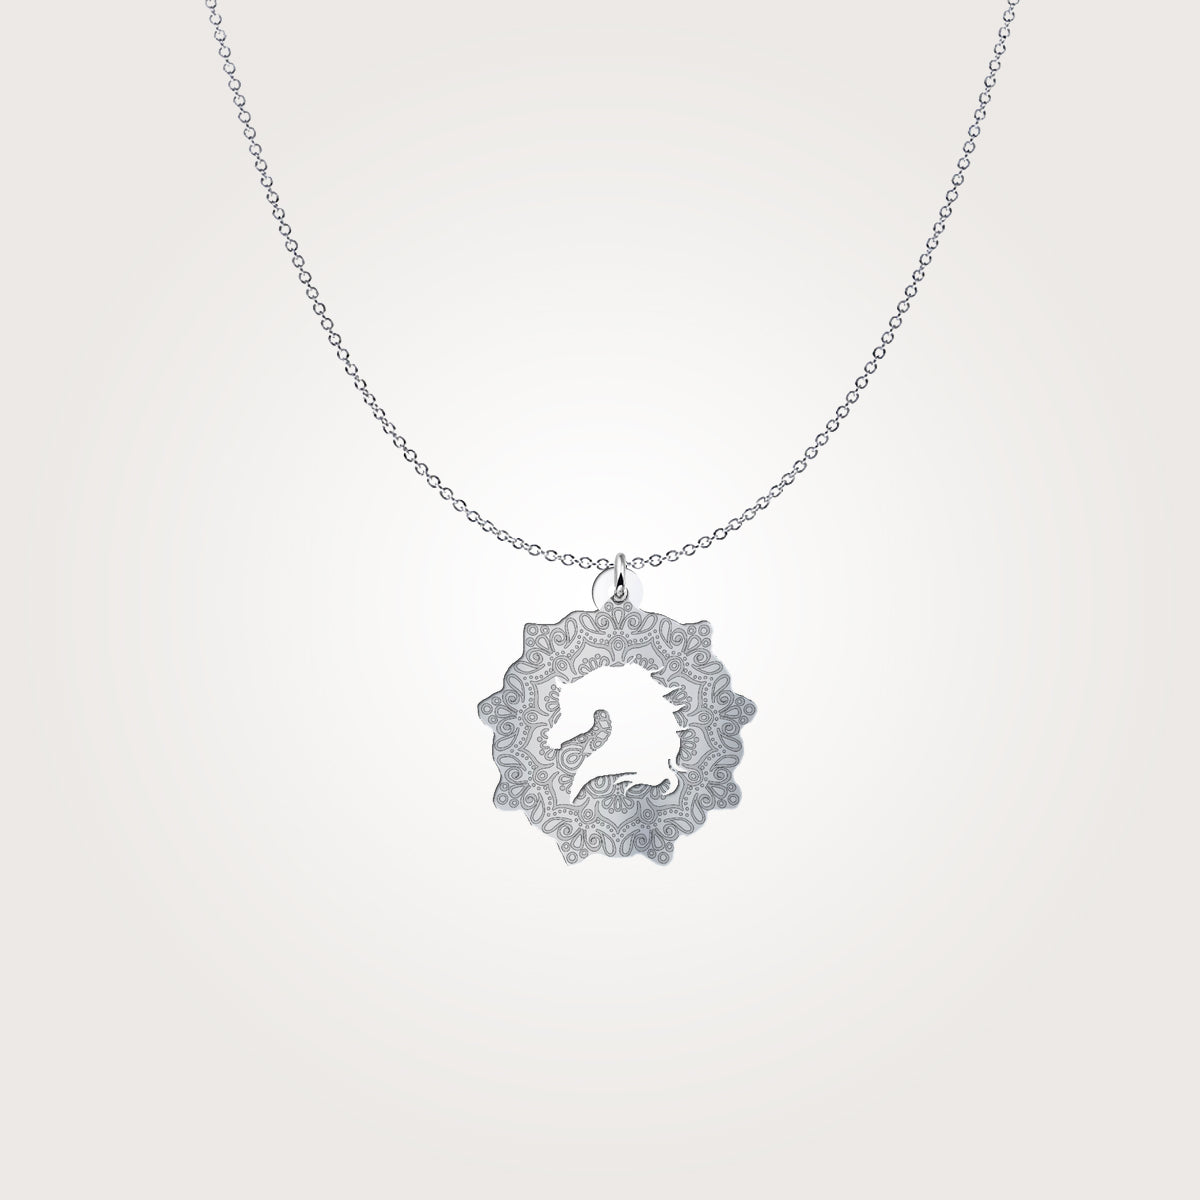 Mandala Arabian Horse Silhouette Sterling Silver Necklace